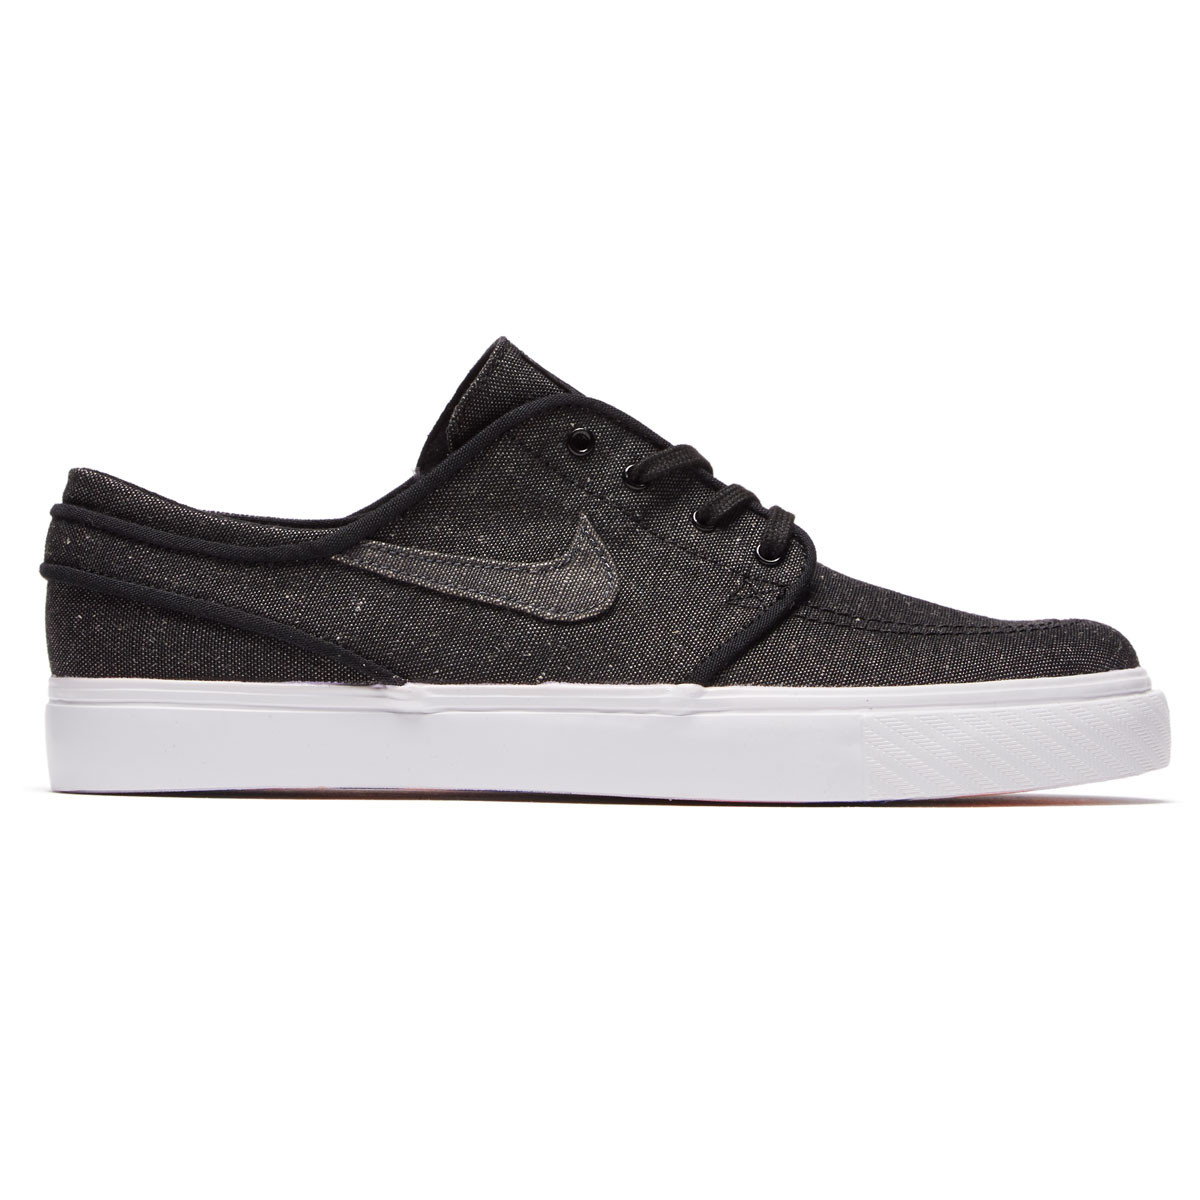 f7f1e85548 Nike SB Zoom Stefan Janoski Canvas Deconstructed Shoes - Black Anthracite  White Hyper Royal